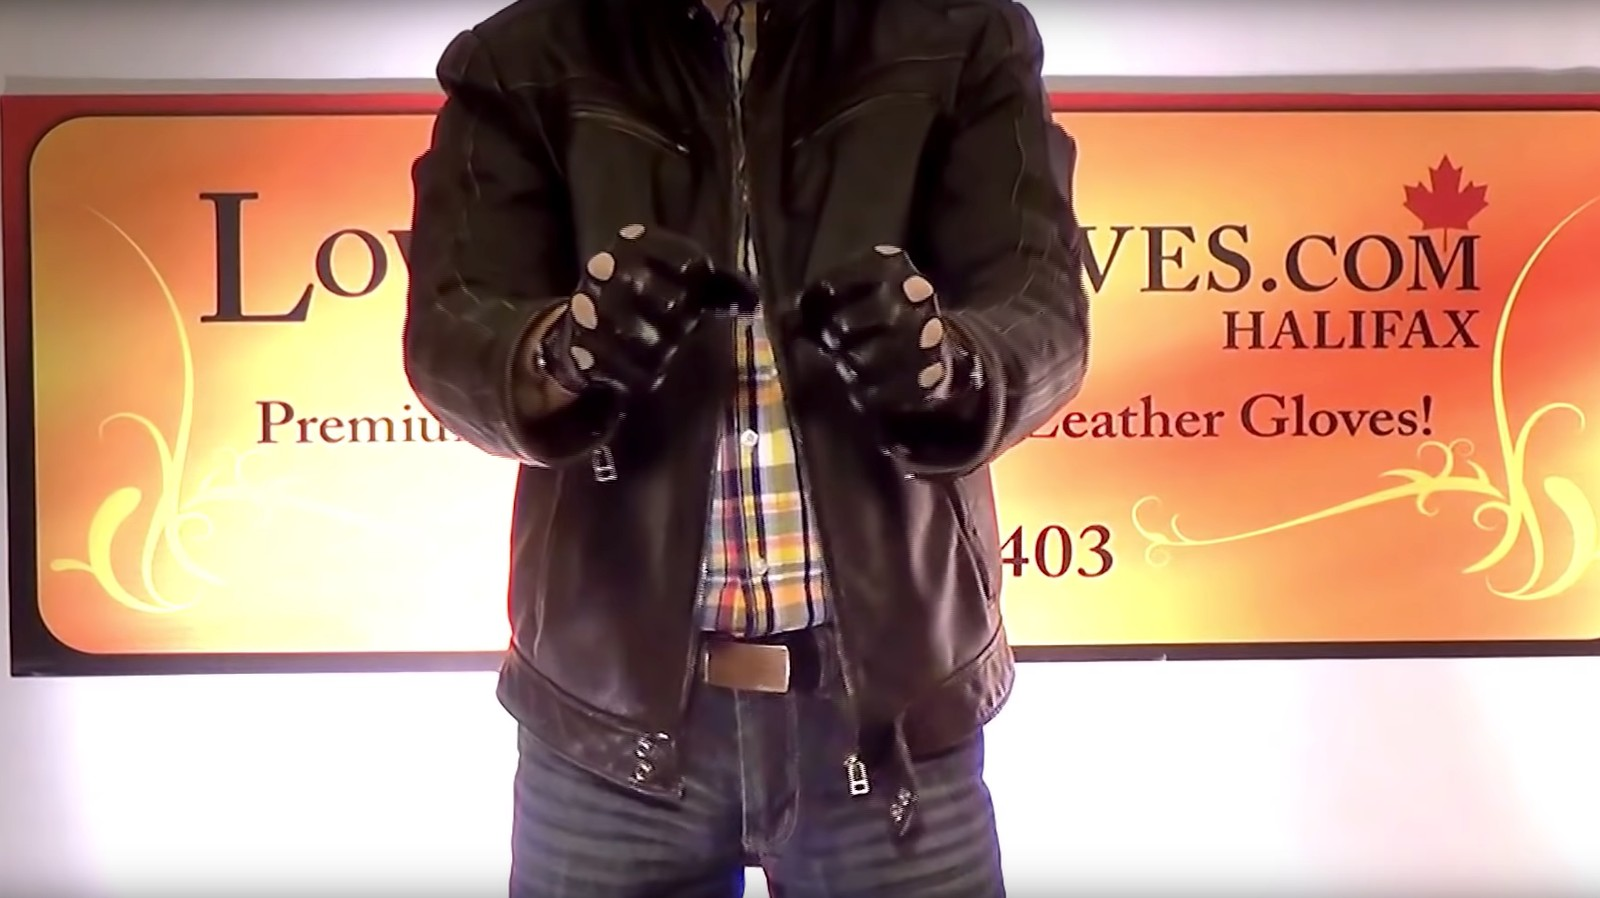 This Late-Night Glove Salesman Masturbating Story Is Very Weird but Also True